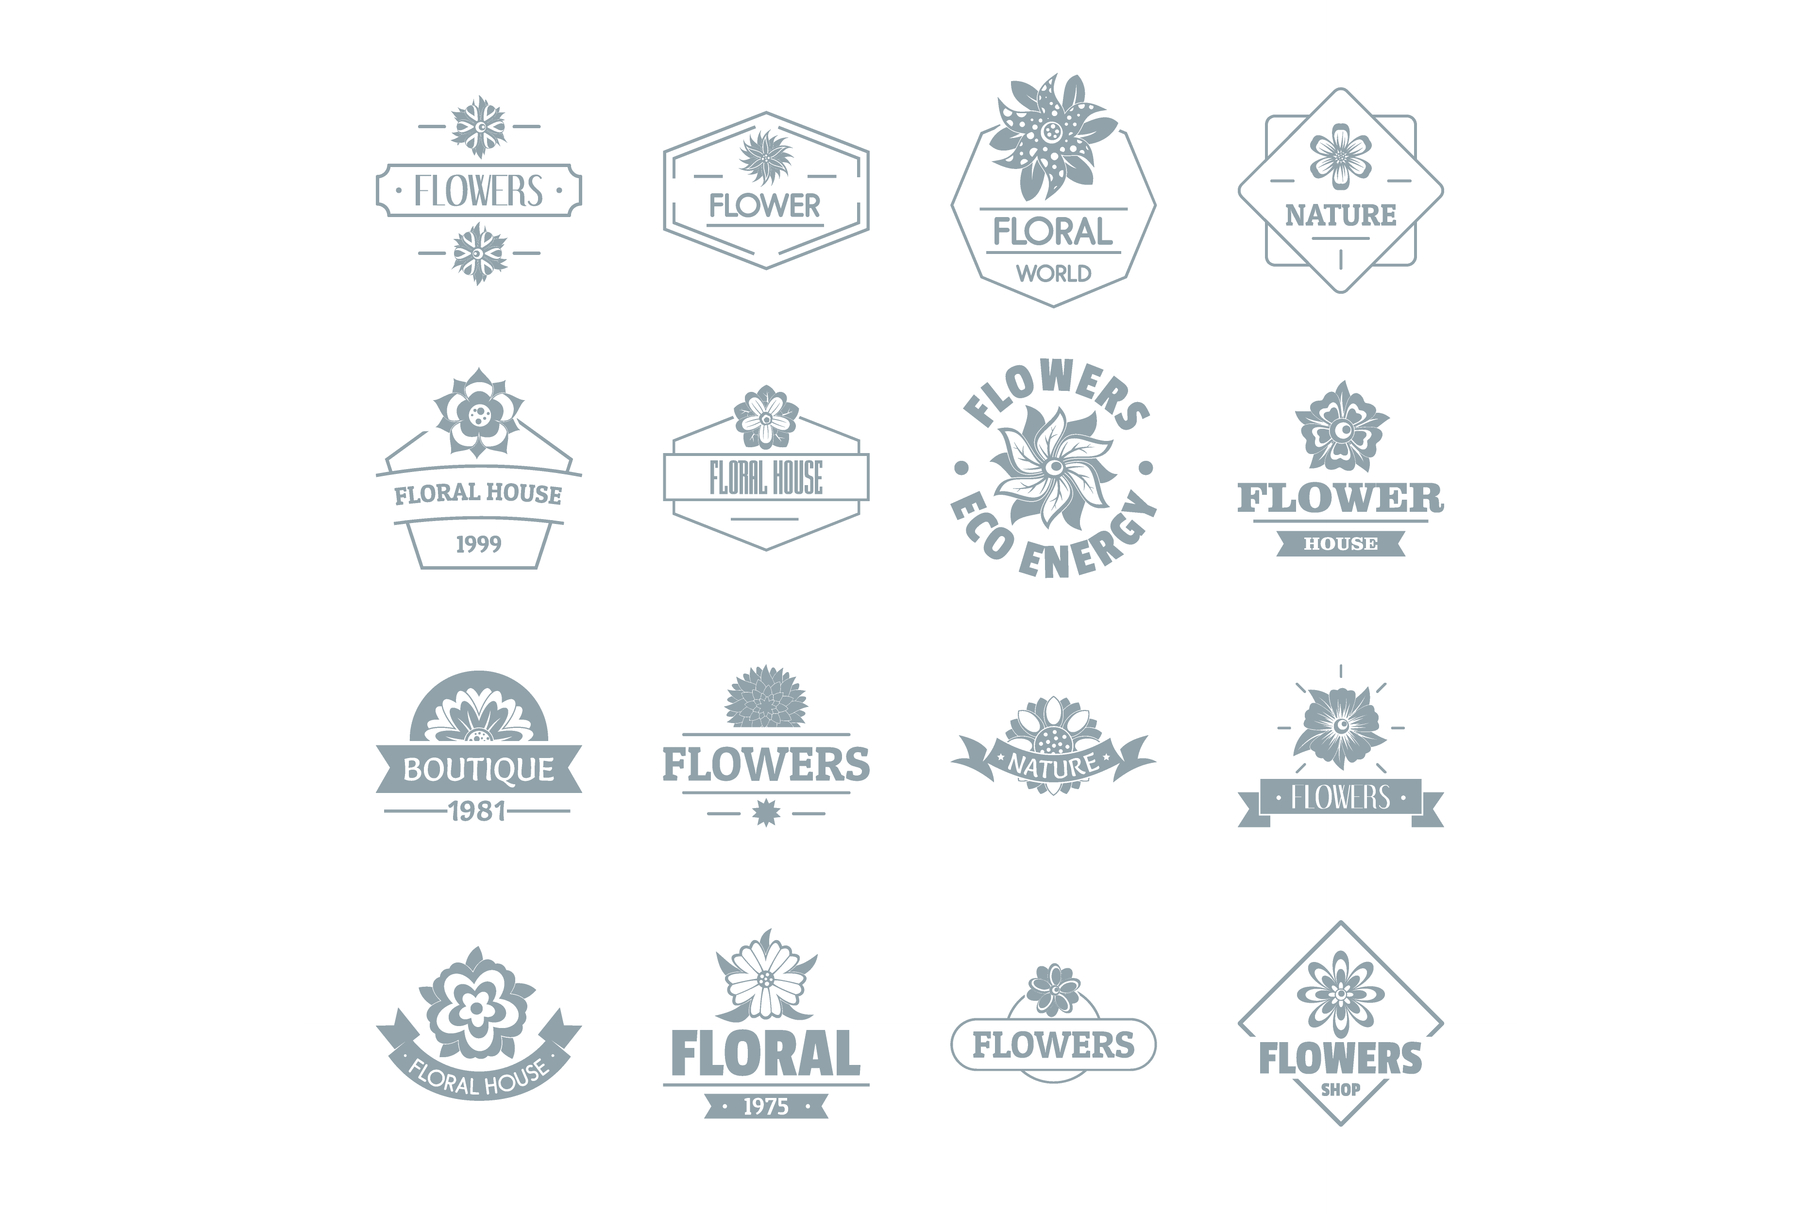 Flowers logo icons set, simple style example image 1